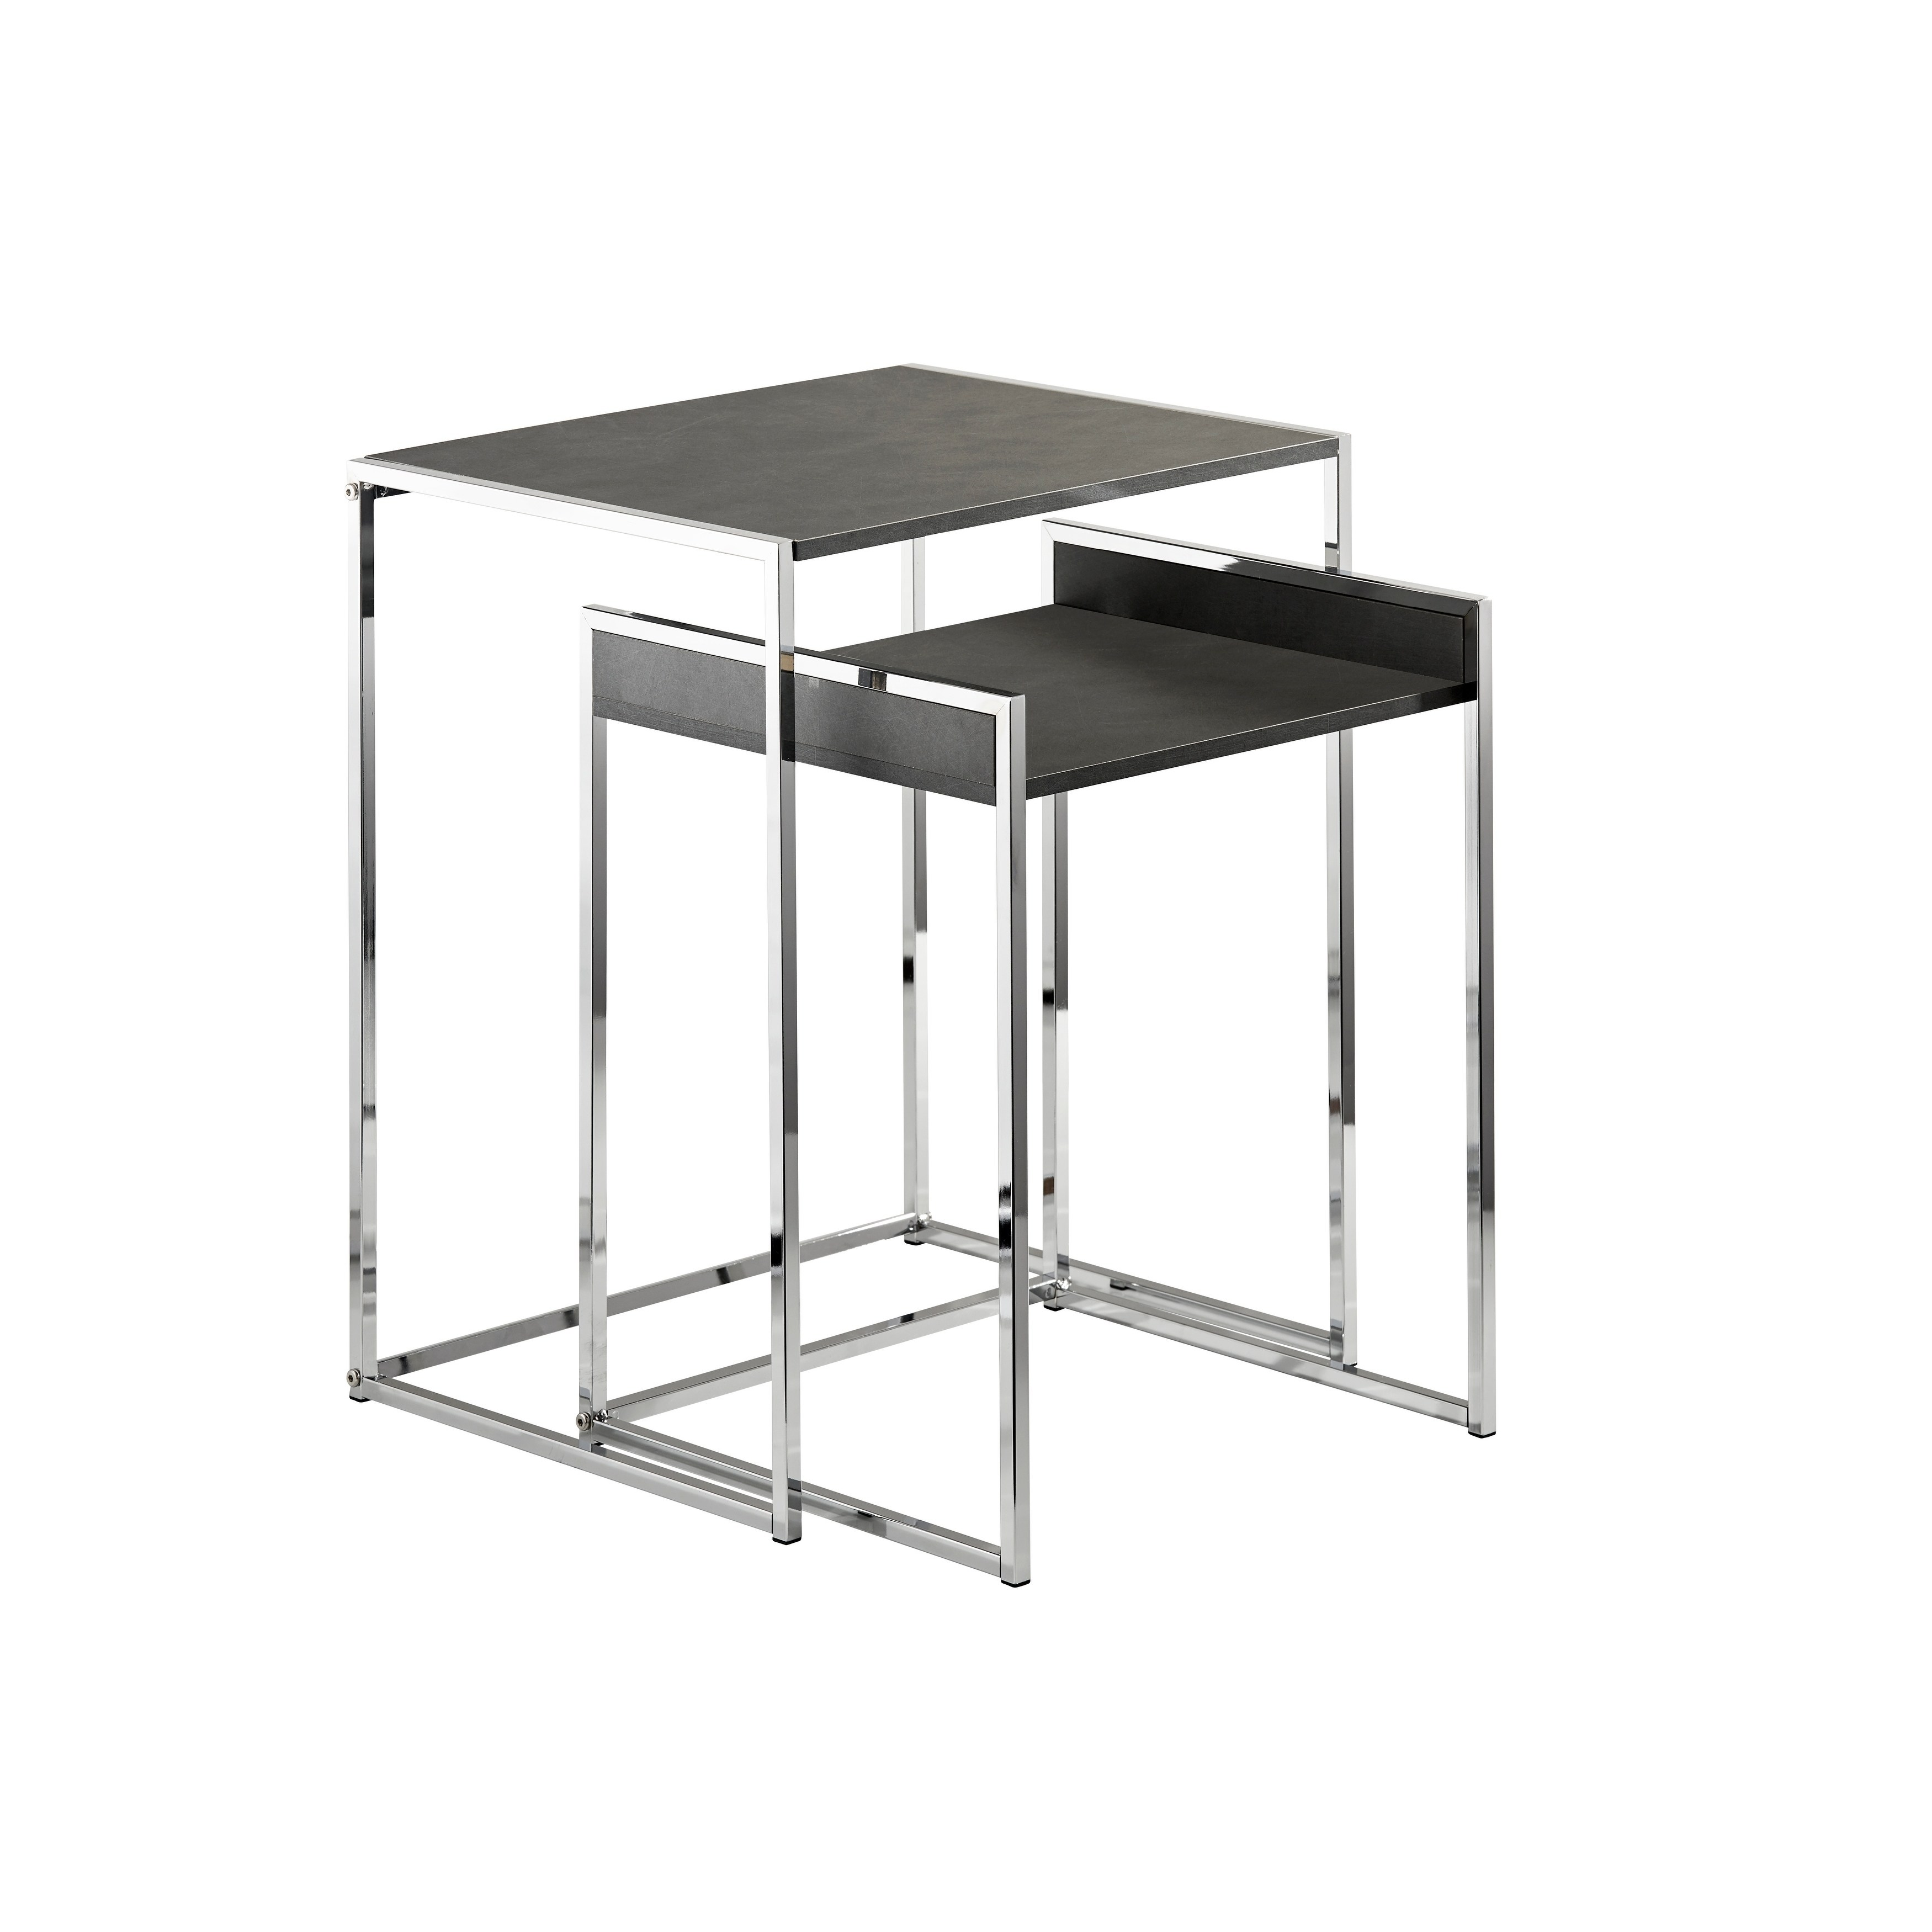 adesso ryder nesting tables free shipping today small accent table vintage hexagon side sofa and coffee grooming pier nightstands target student desk glass pendant shades shallow